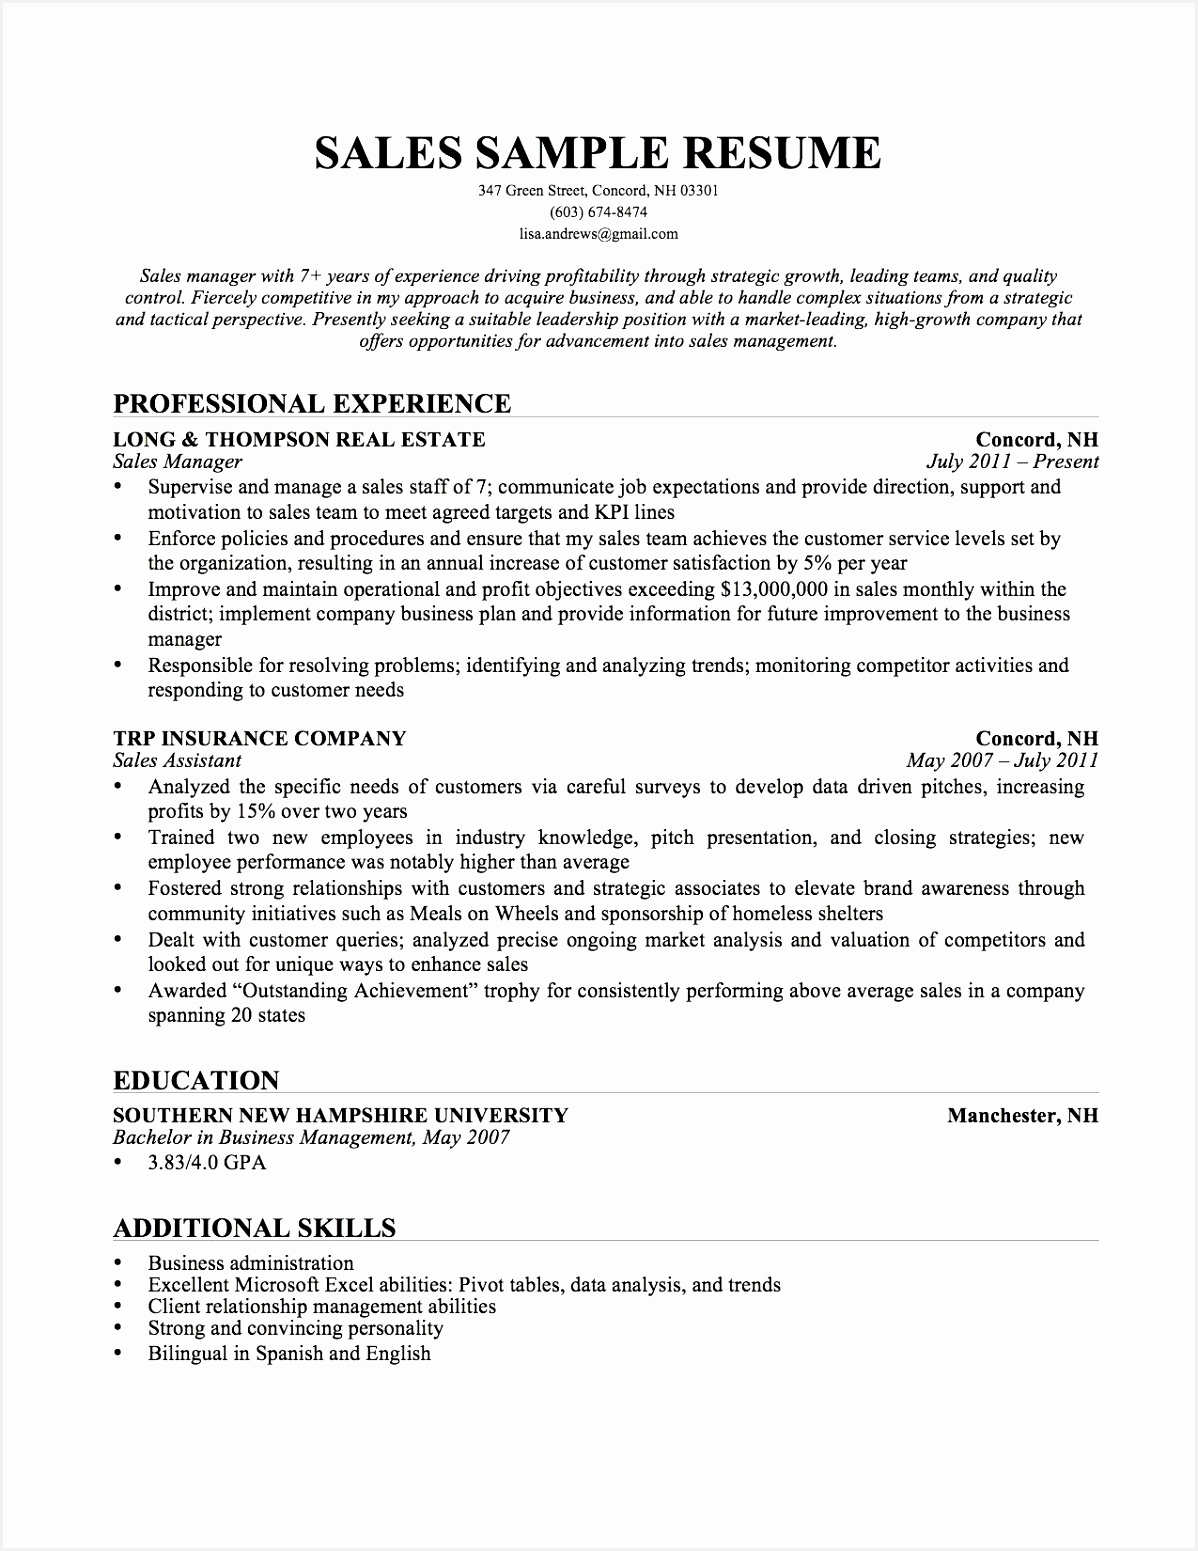 Resum Sample Best Chef Resume Samples Chef Resume Samples Awesome Retail Resume 0d 155111983Ucvn